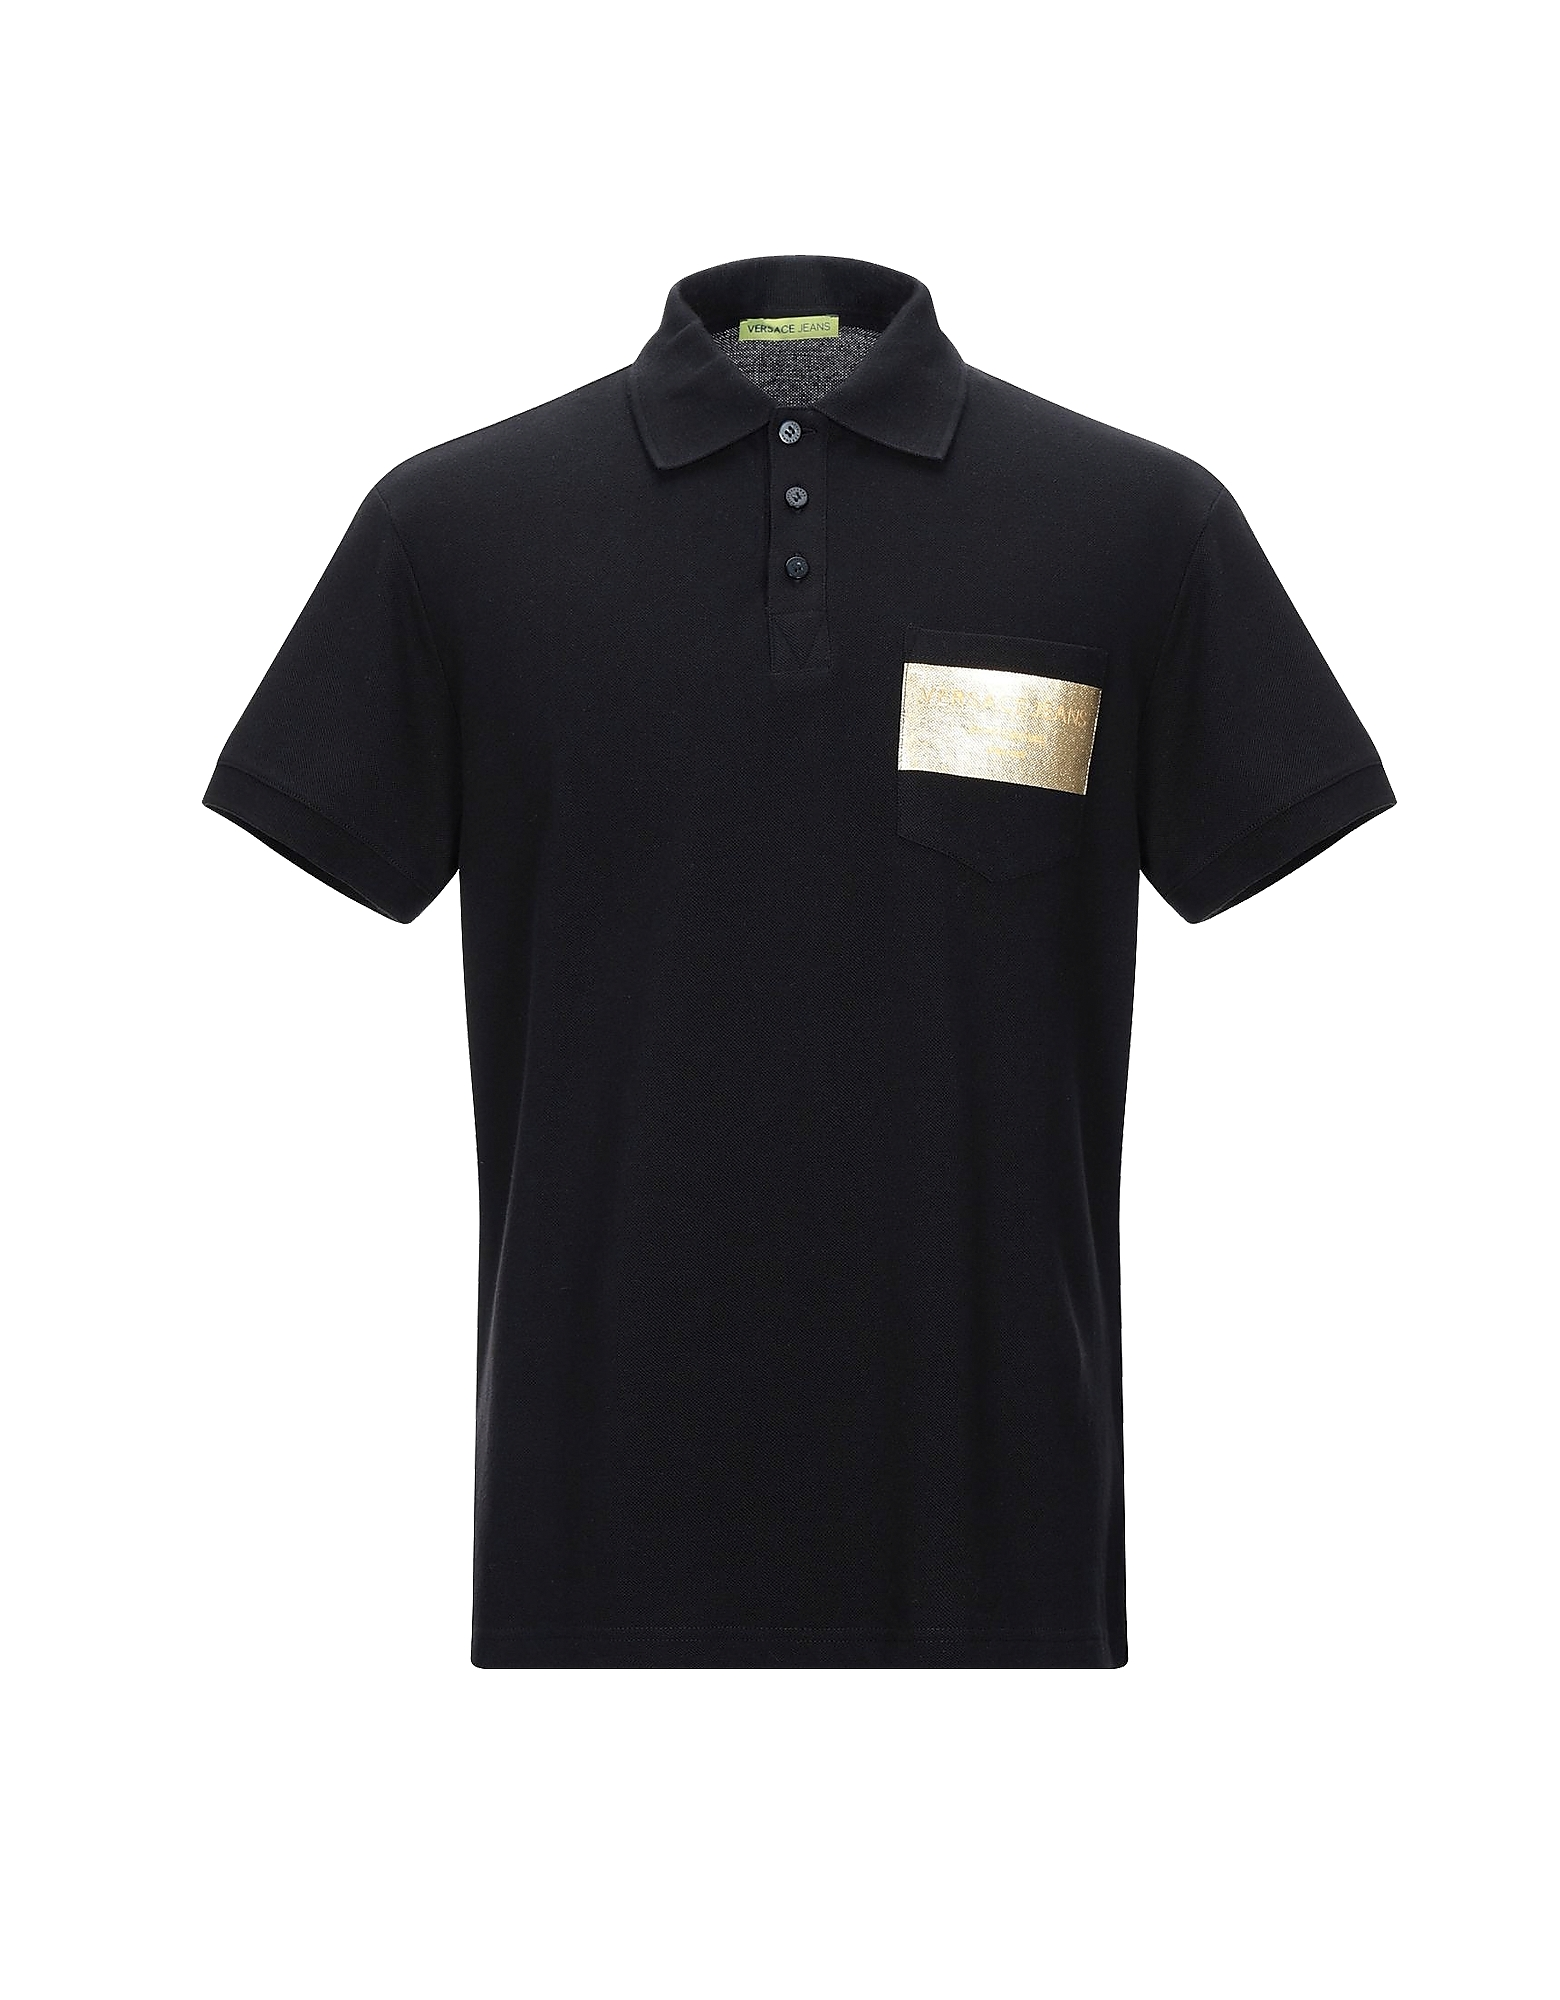 Versace Jeans Designer Polo Shirts, Black and Gold Cotton Men's Polo Shirt